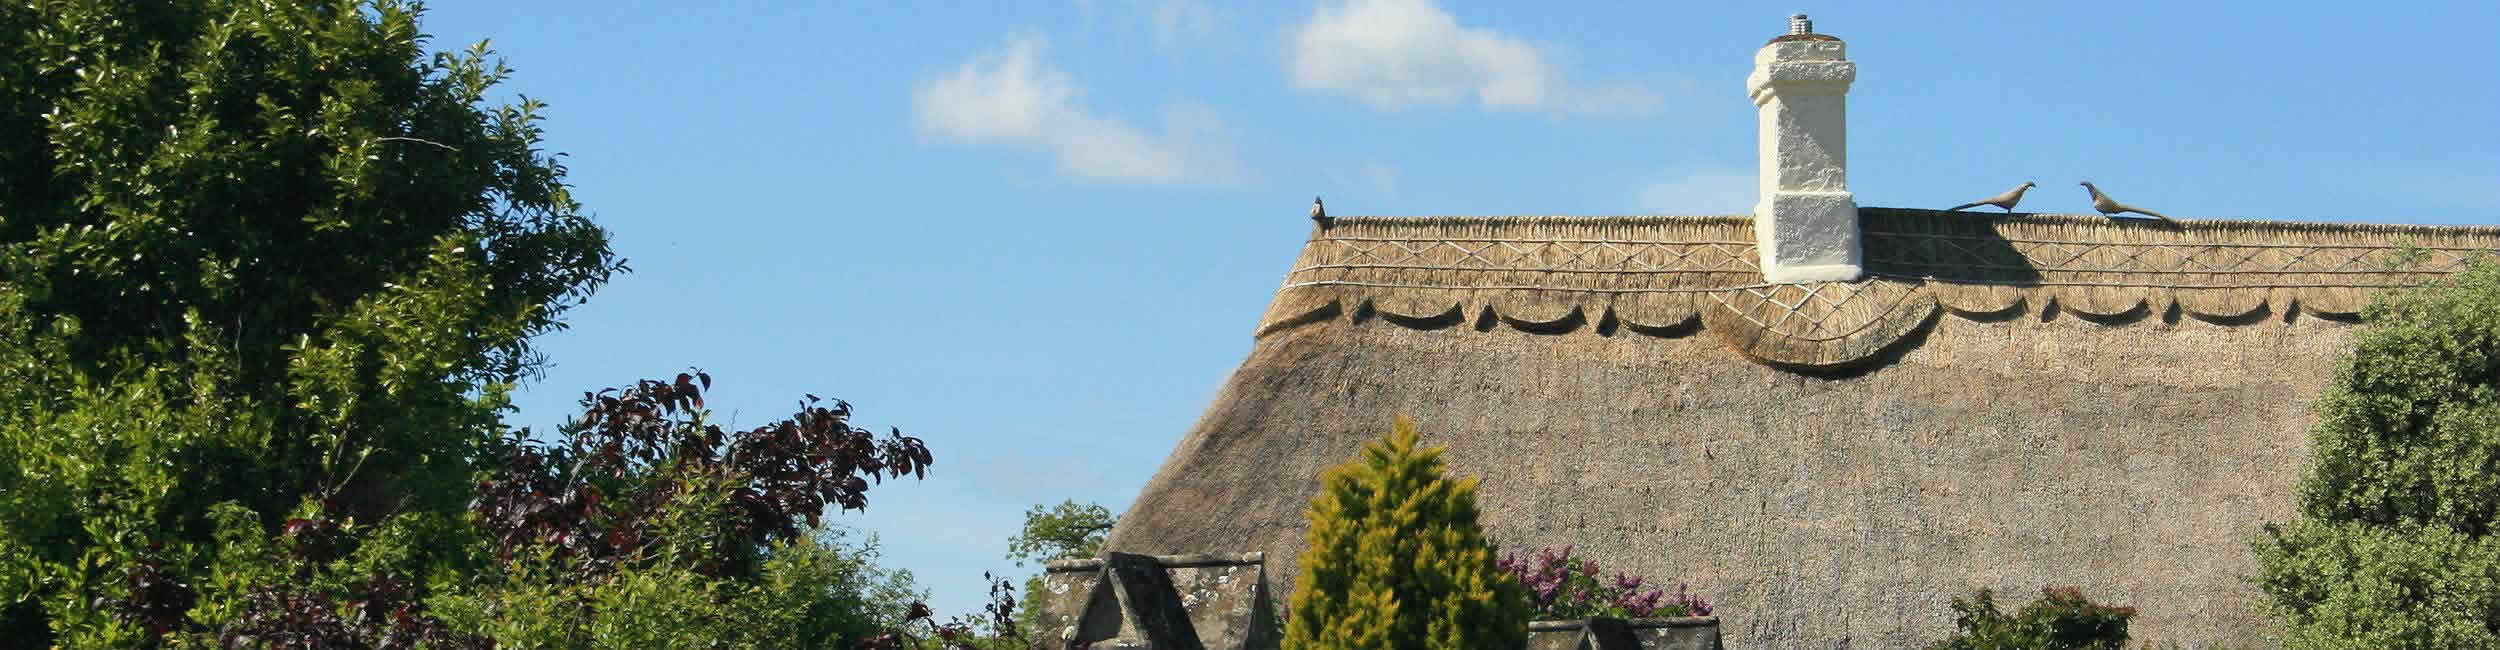 Devon Rose Lettings and Property Management - thatched roof